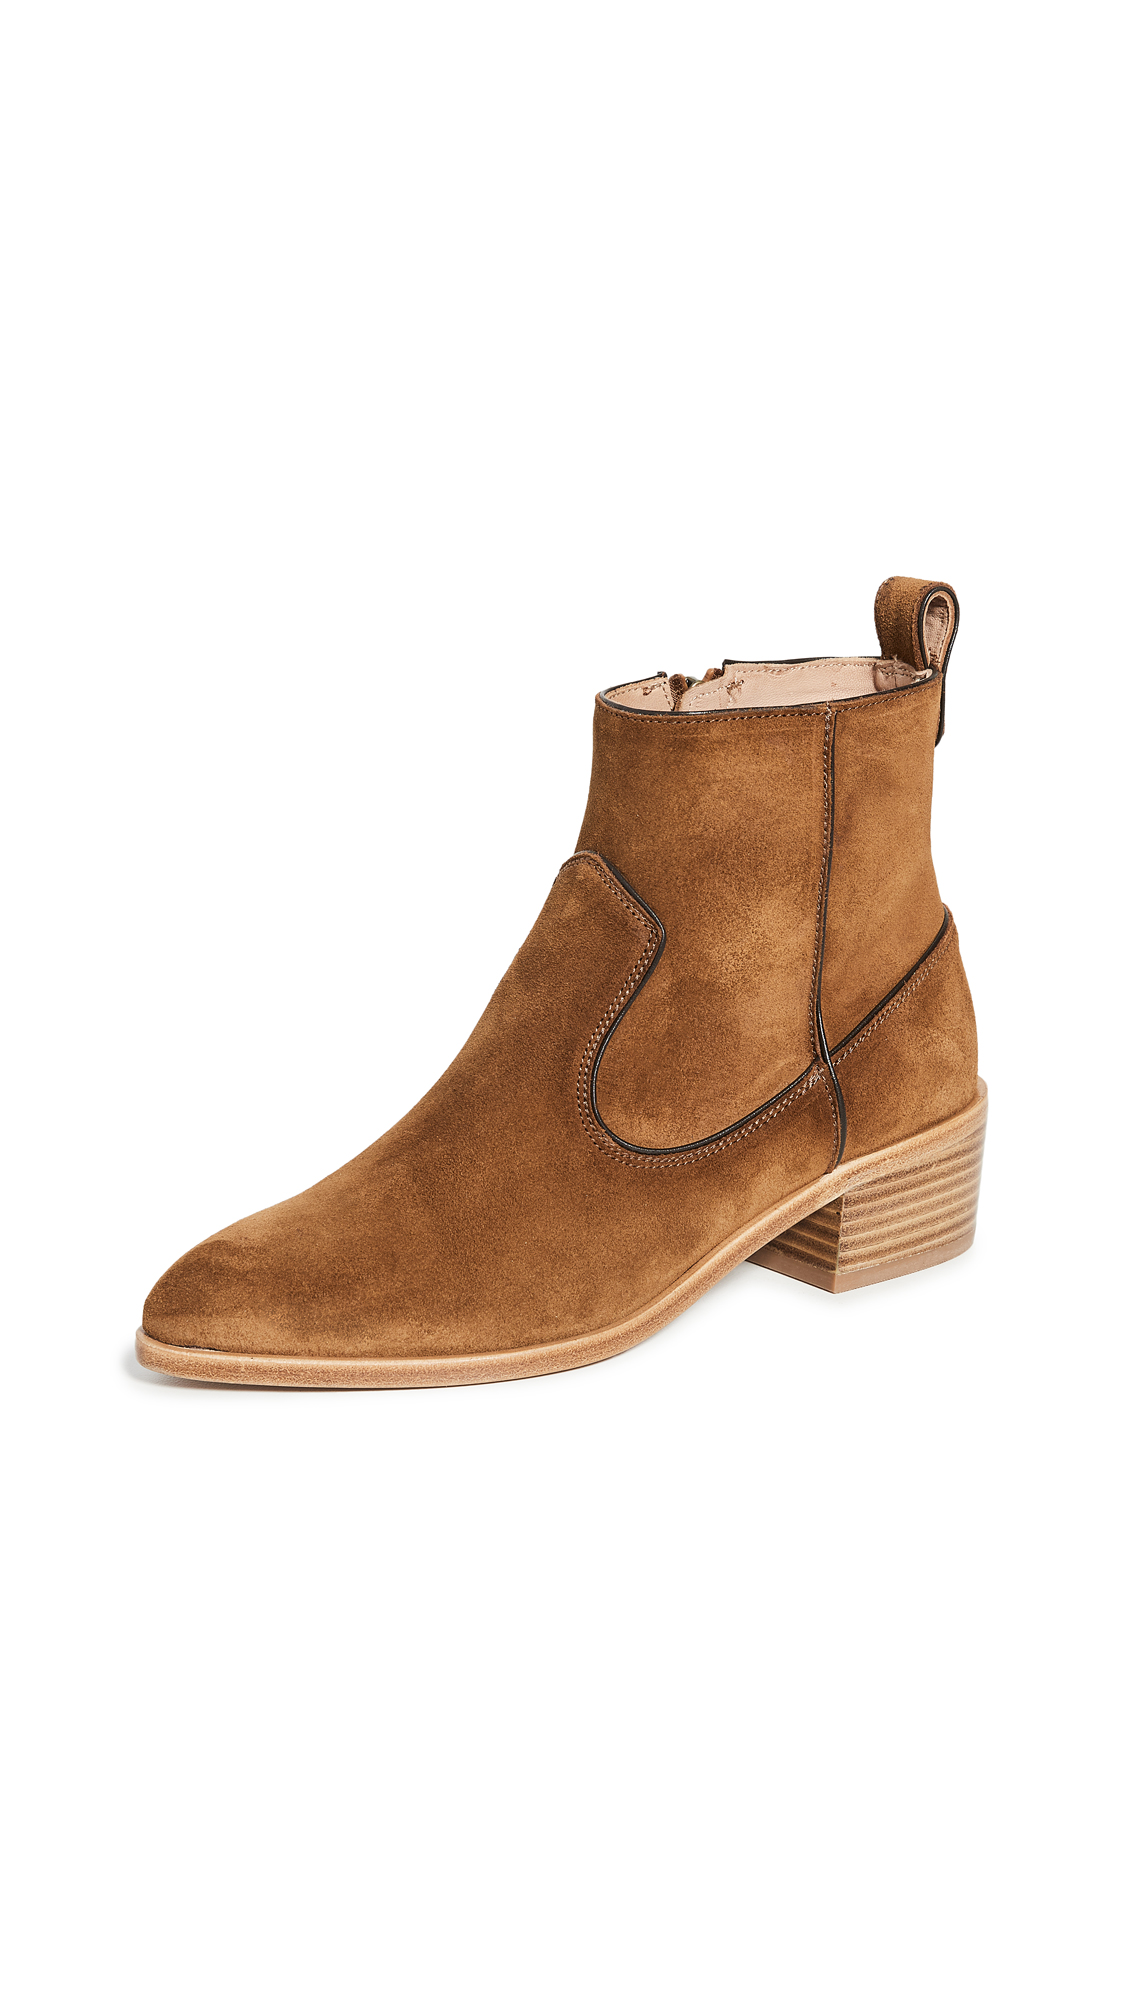 Buy Veronica Beard Tanner Boots online, shop Veronica Beard